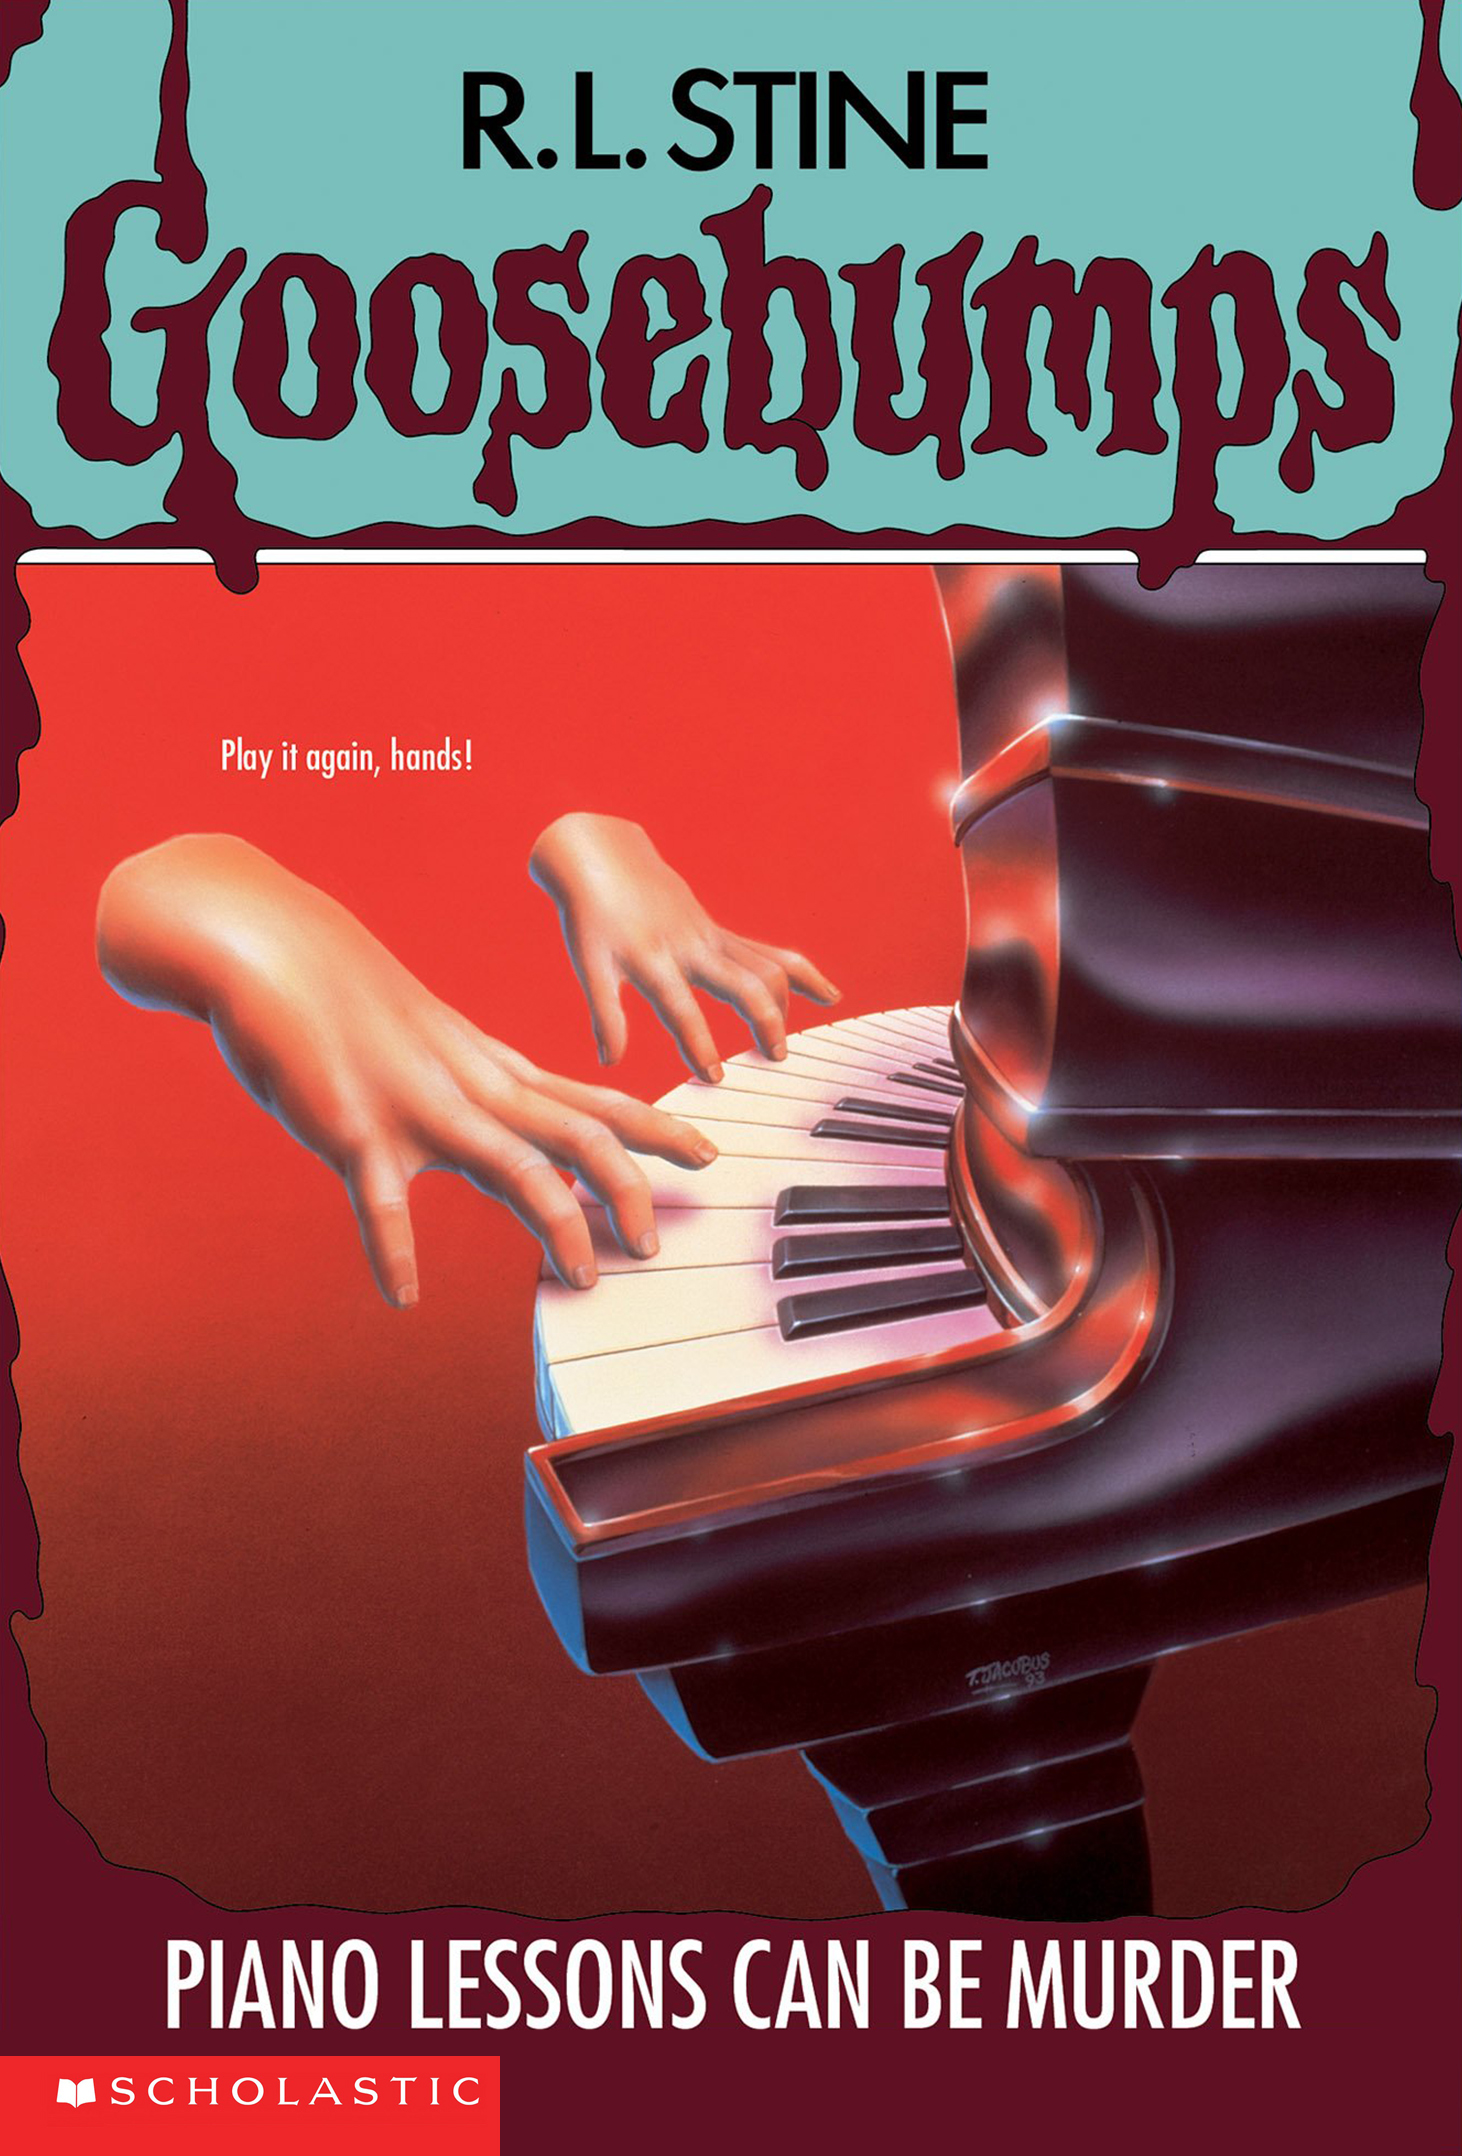 Goosebumps - Piano Lessons Can Be Murder by R.L. Stine